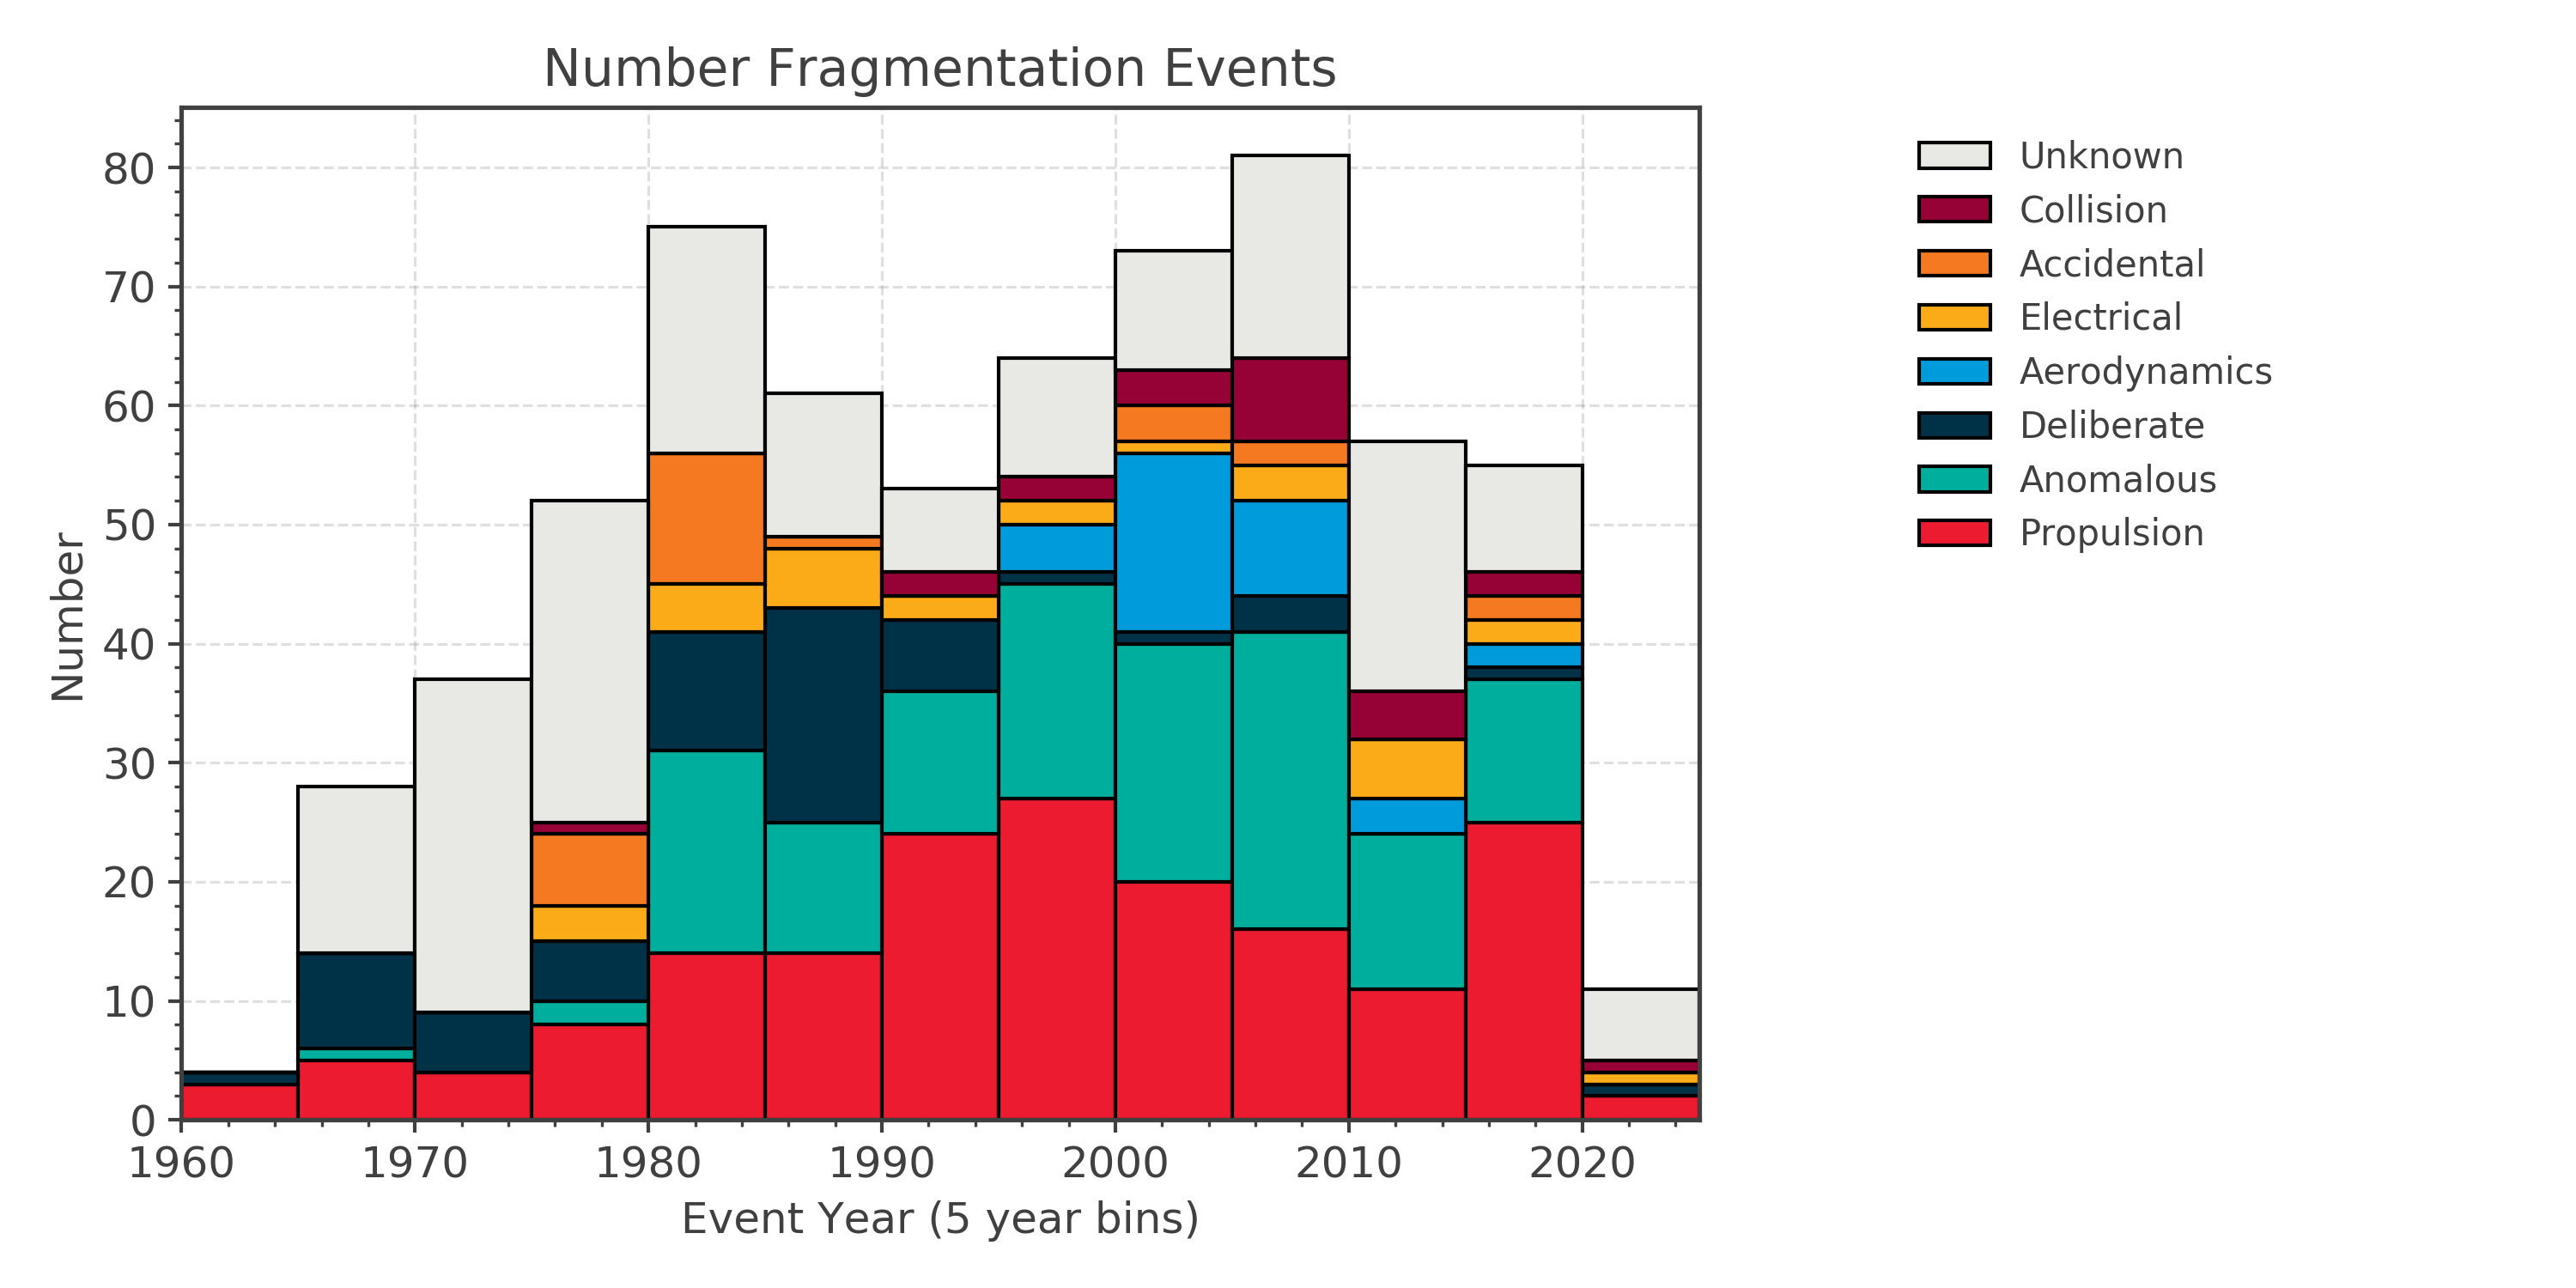 Number of fragmentation events over time subdivided by fragmentation cause